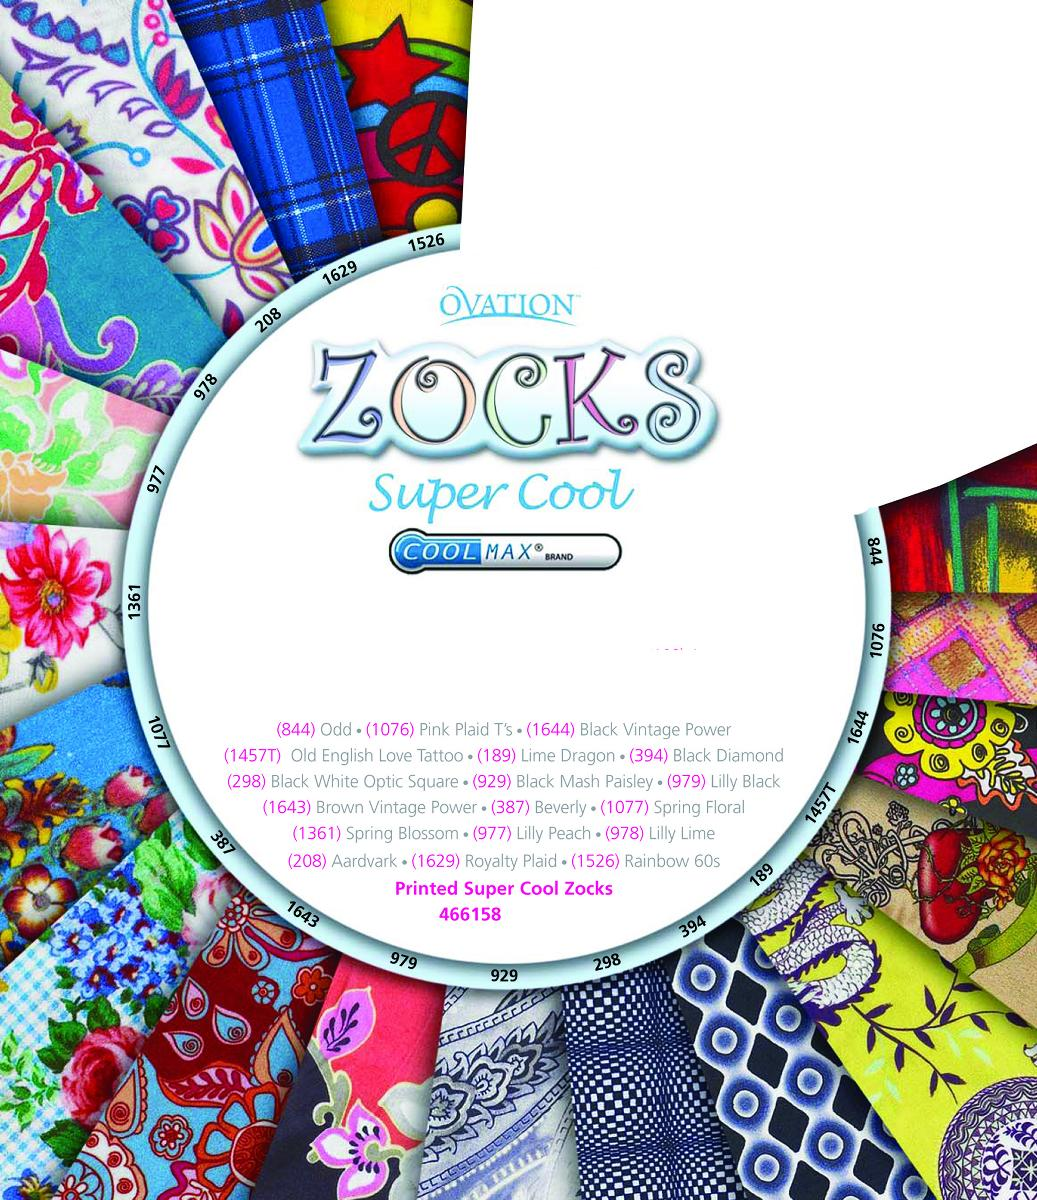 Ovation Zocks CoolMax Socks